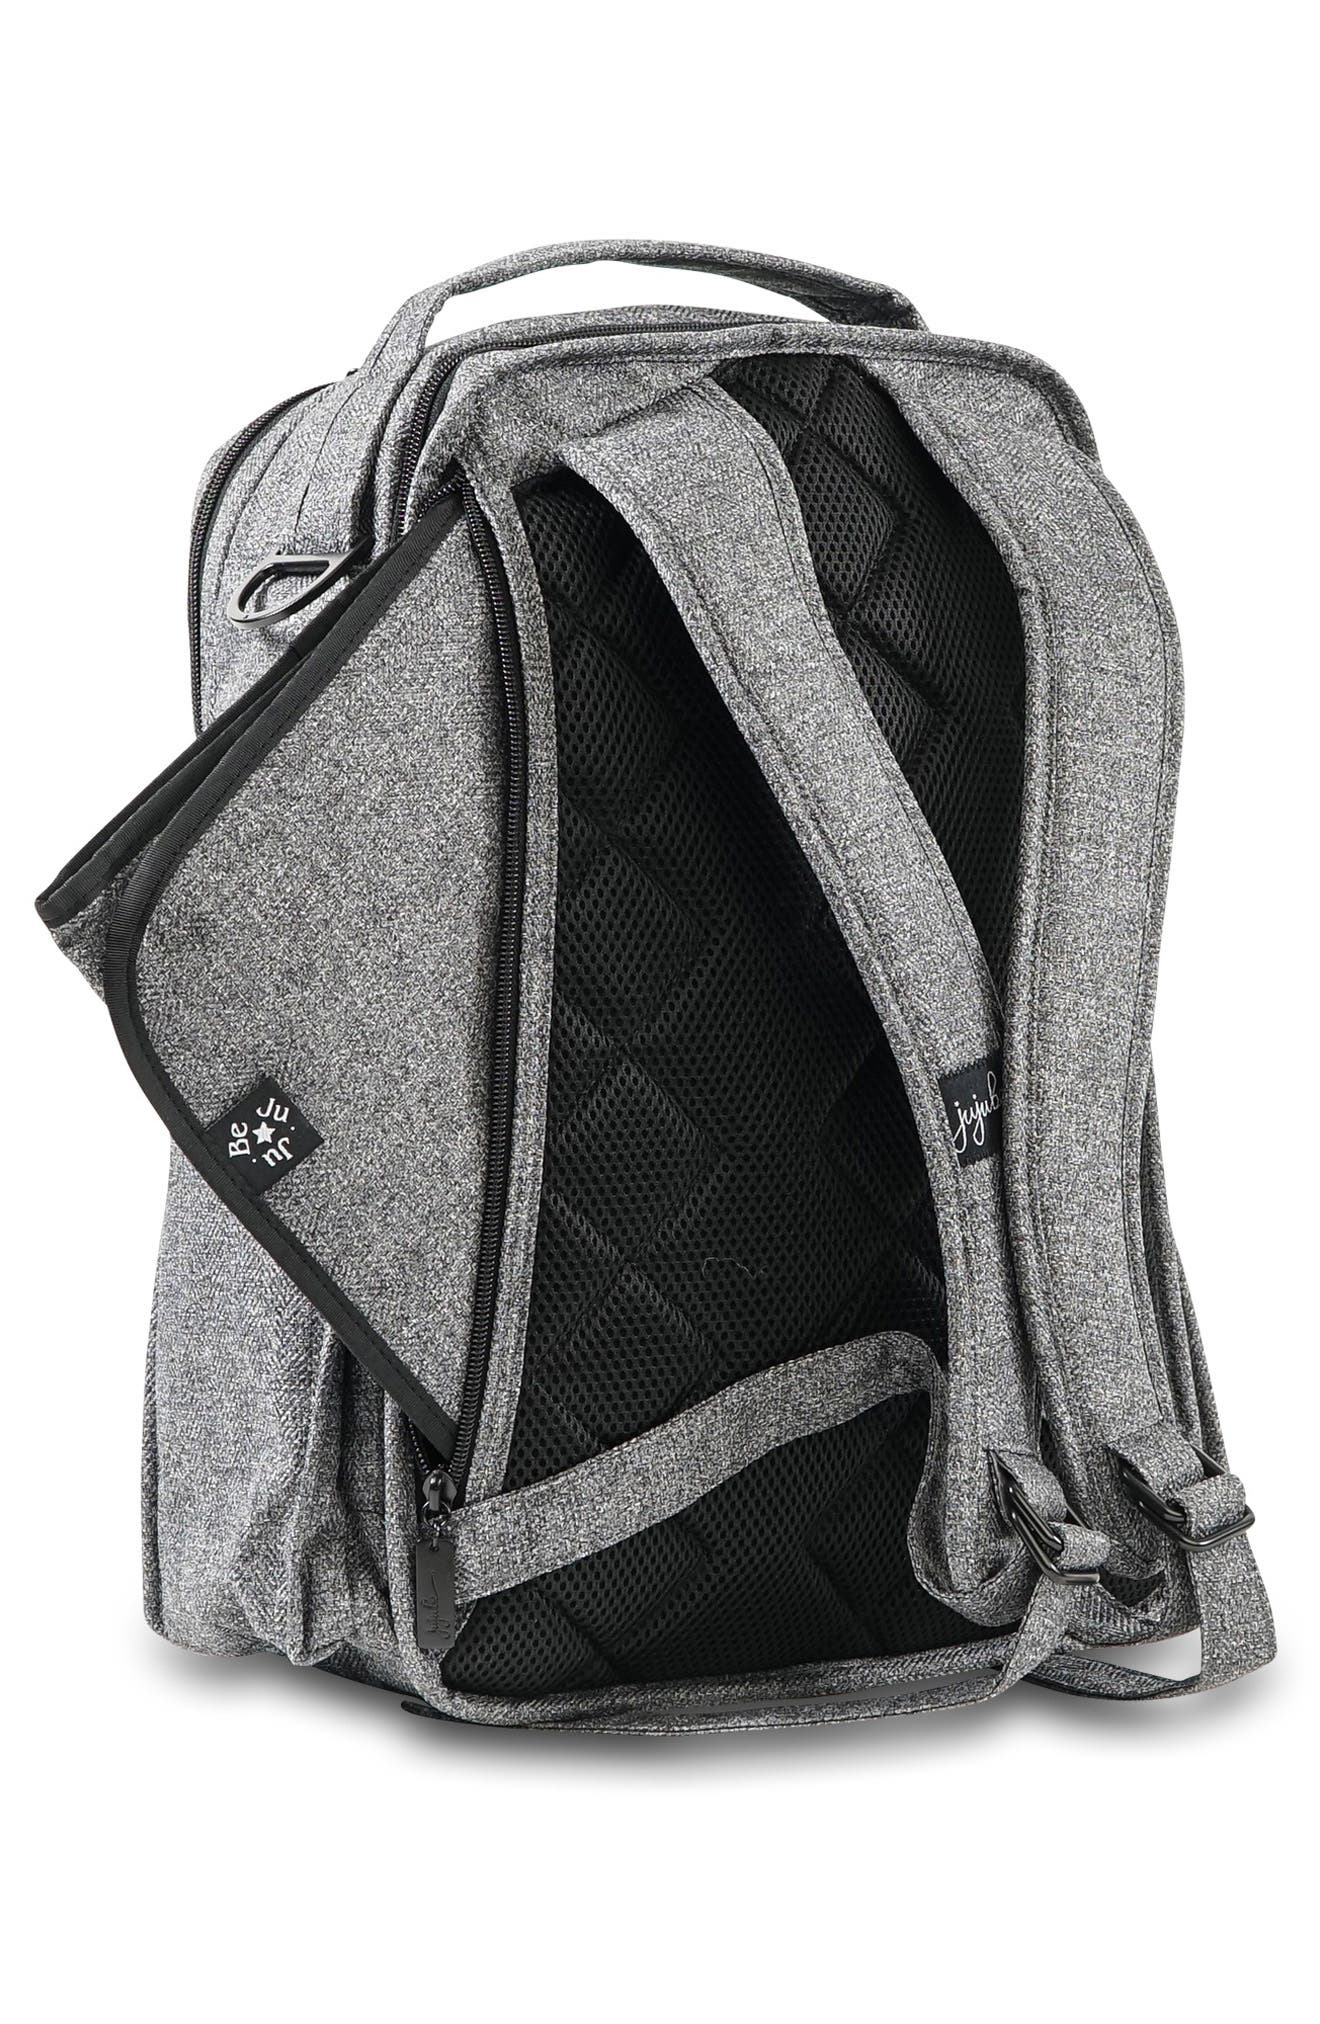 'Be Right Back - Onyx Collection' Diaper Backpack,                             Alternate thumbnail 6, color,                             GRAY MATTER